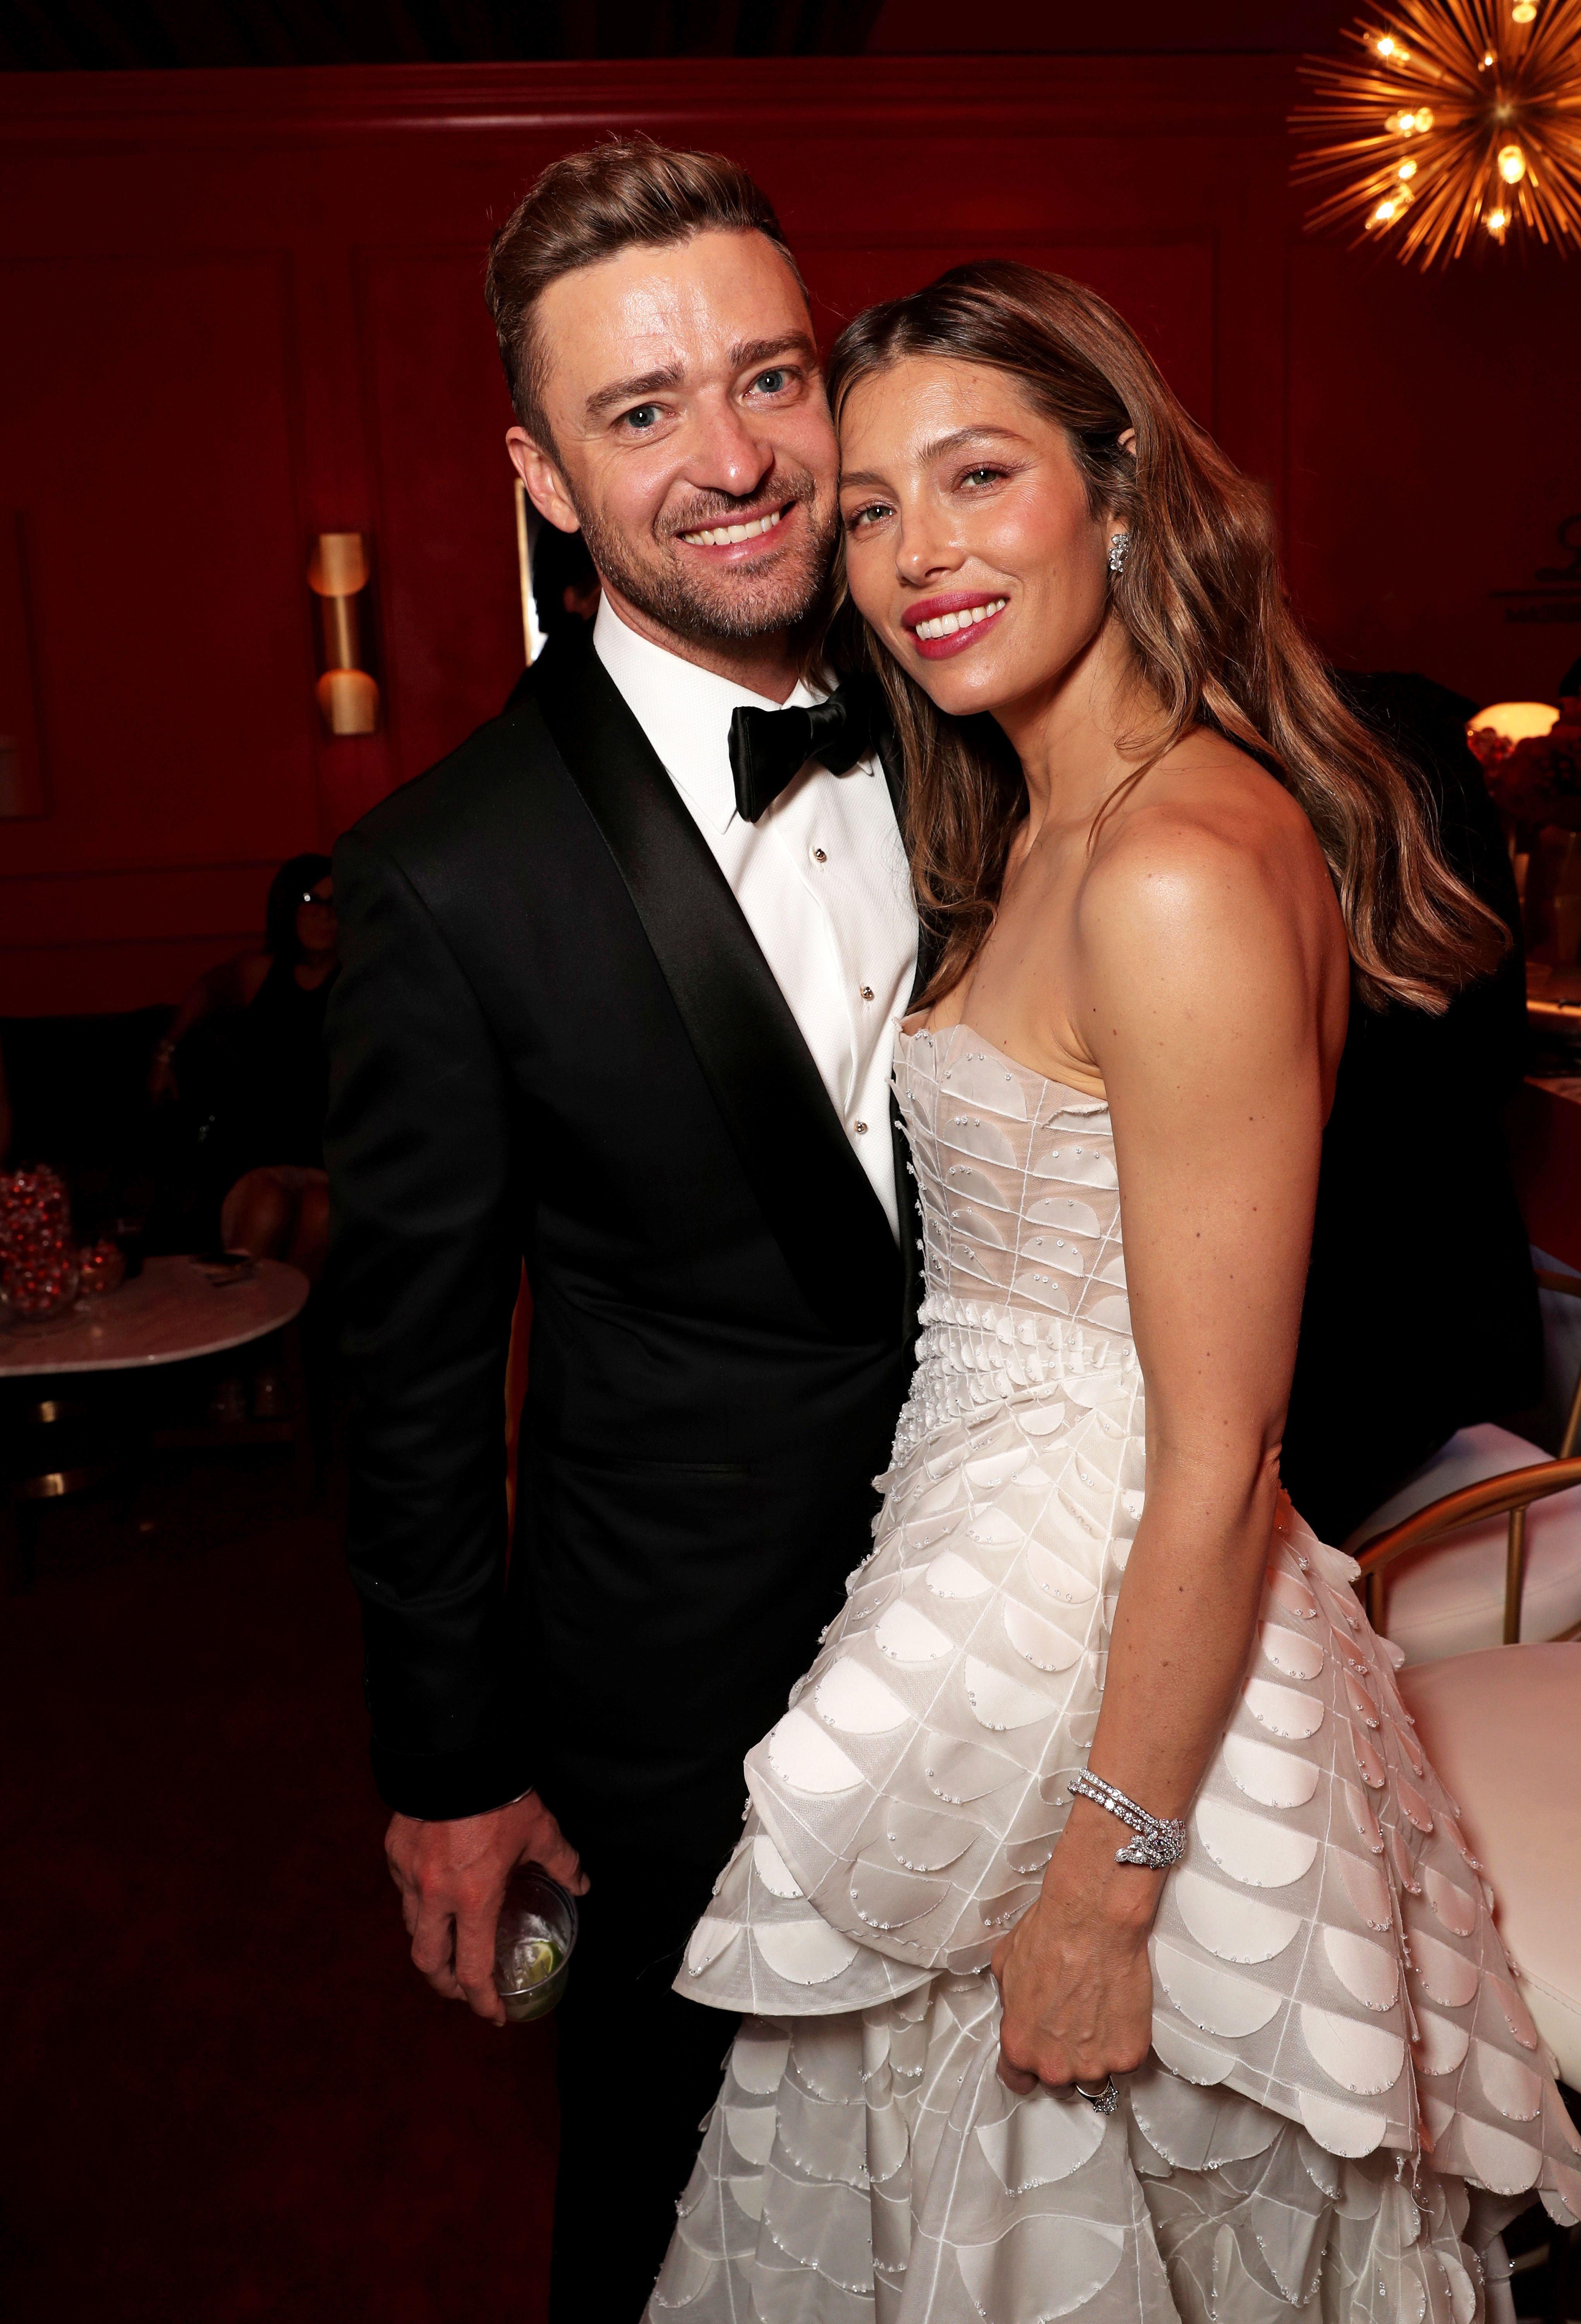 Jessica Biel and Justin Timberlake on How They Knew They Were Meant for Each Other